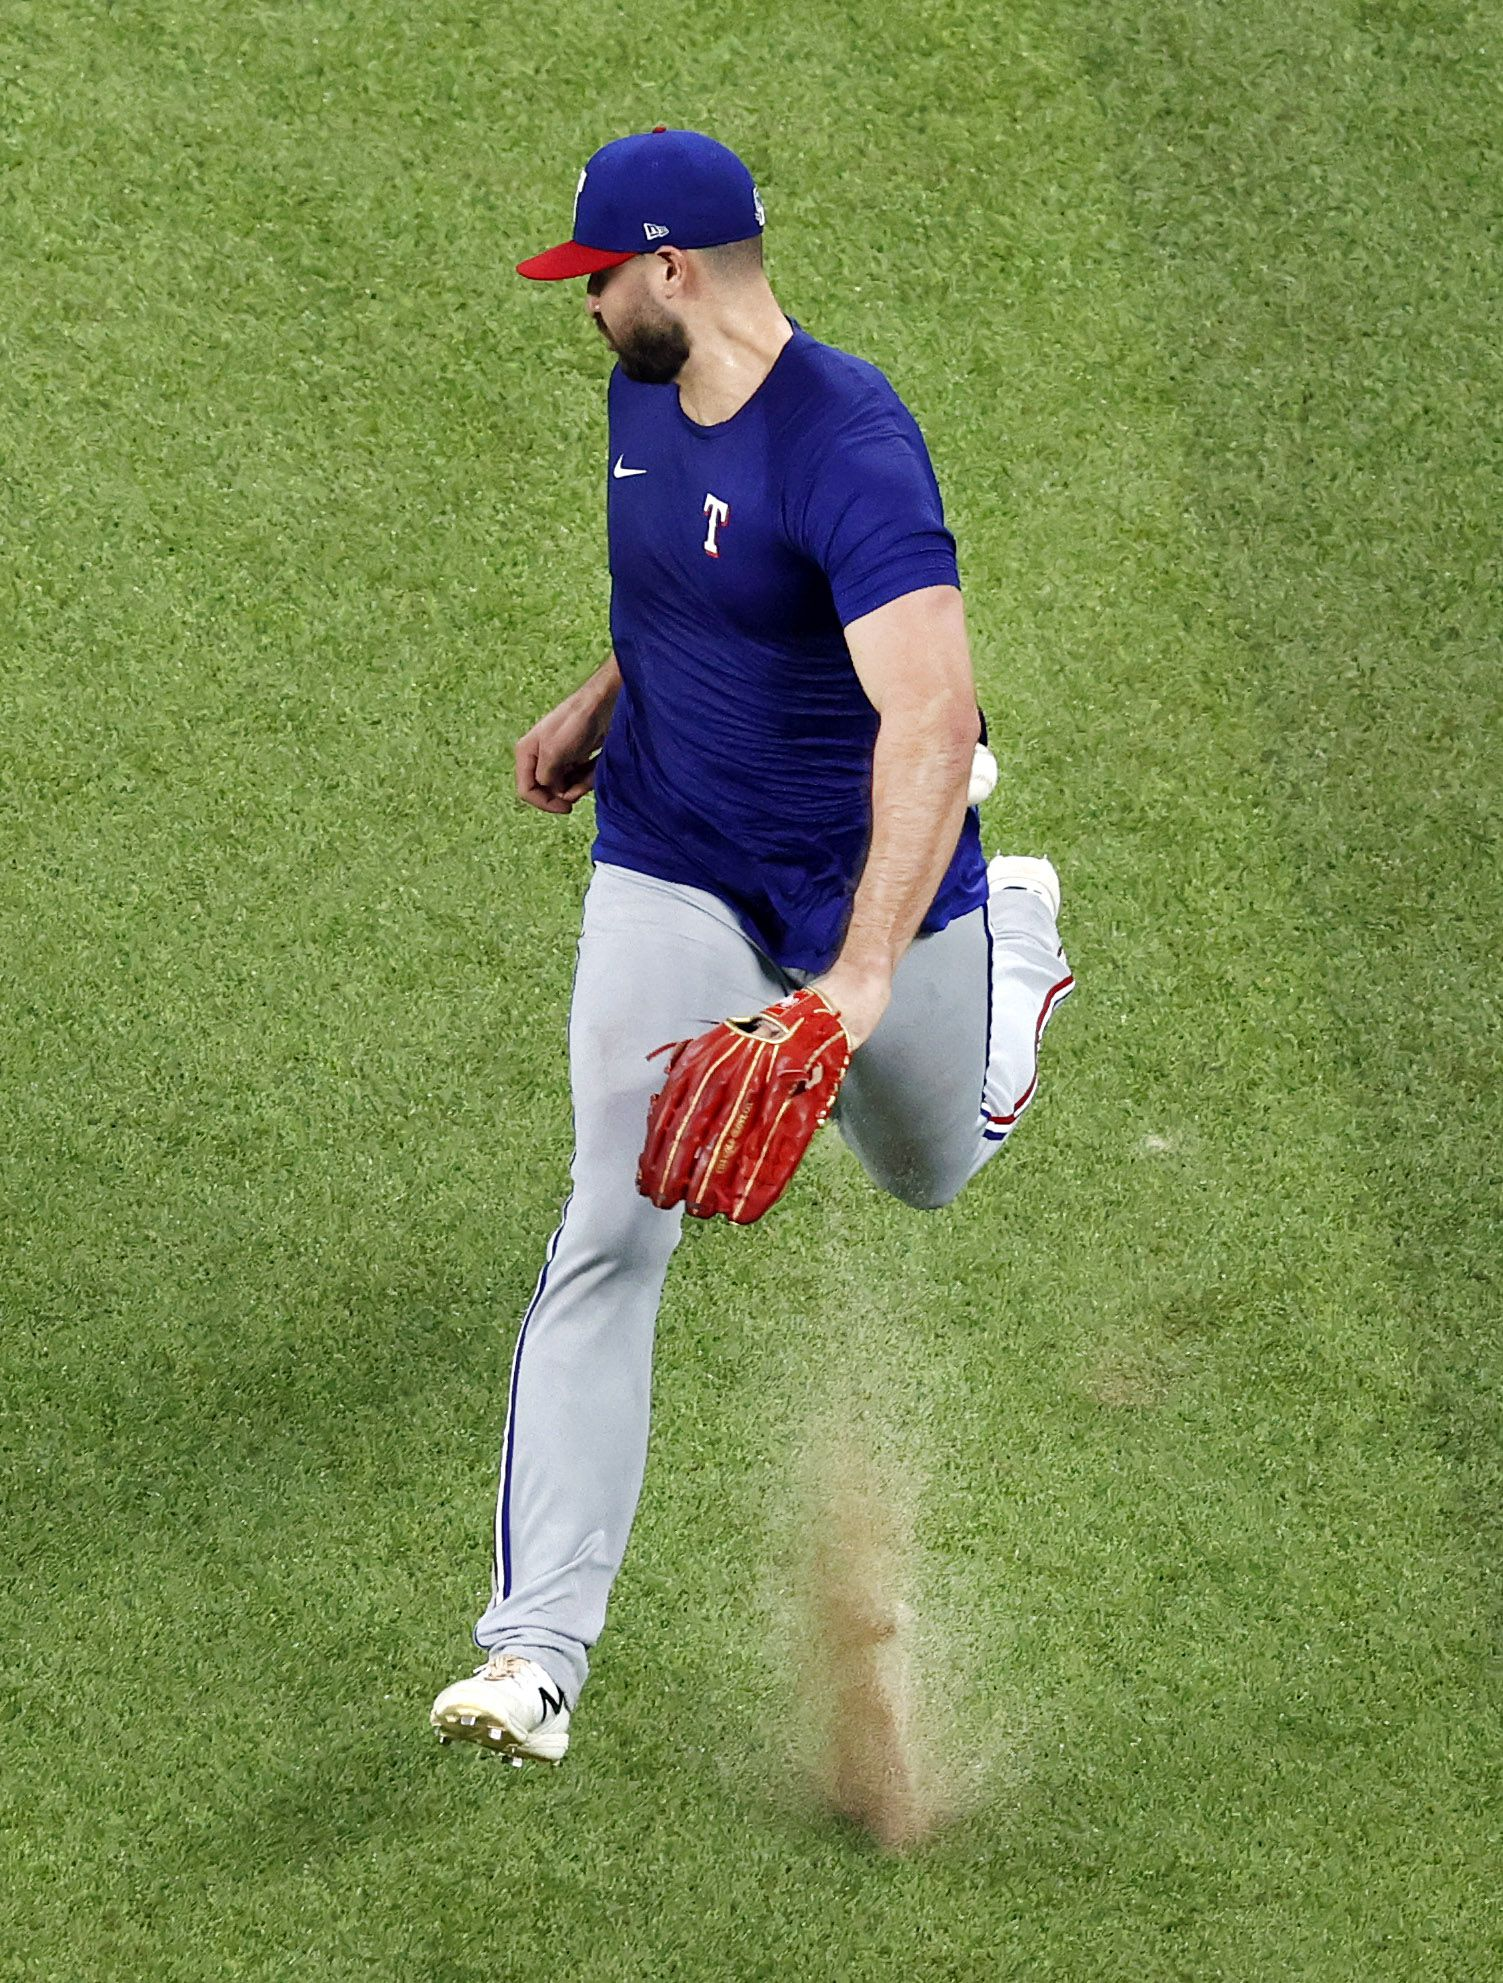 Texas Rangers outfielder Joey Gallo tries to field a fly ball on the hop during Summer Camp practice inside Globe Life Field in Arlington, Texas, Friday, July 10, 2020. Gallo chased it down while looking up at stadium's new roof. Gallo made his first appearance after clearing the COVID-19 intake process but did not participate in the simulated game. (Tom Fox/The Dallas Morning News)